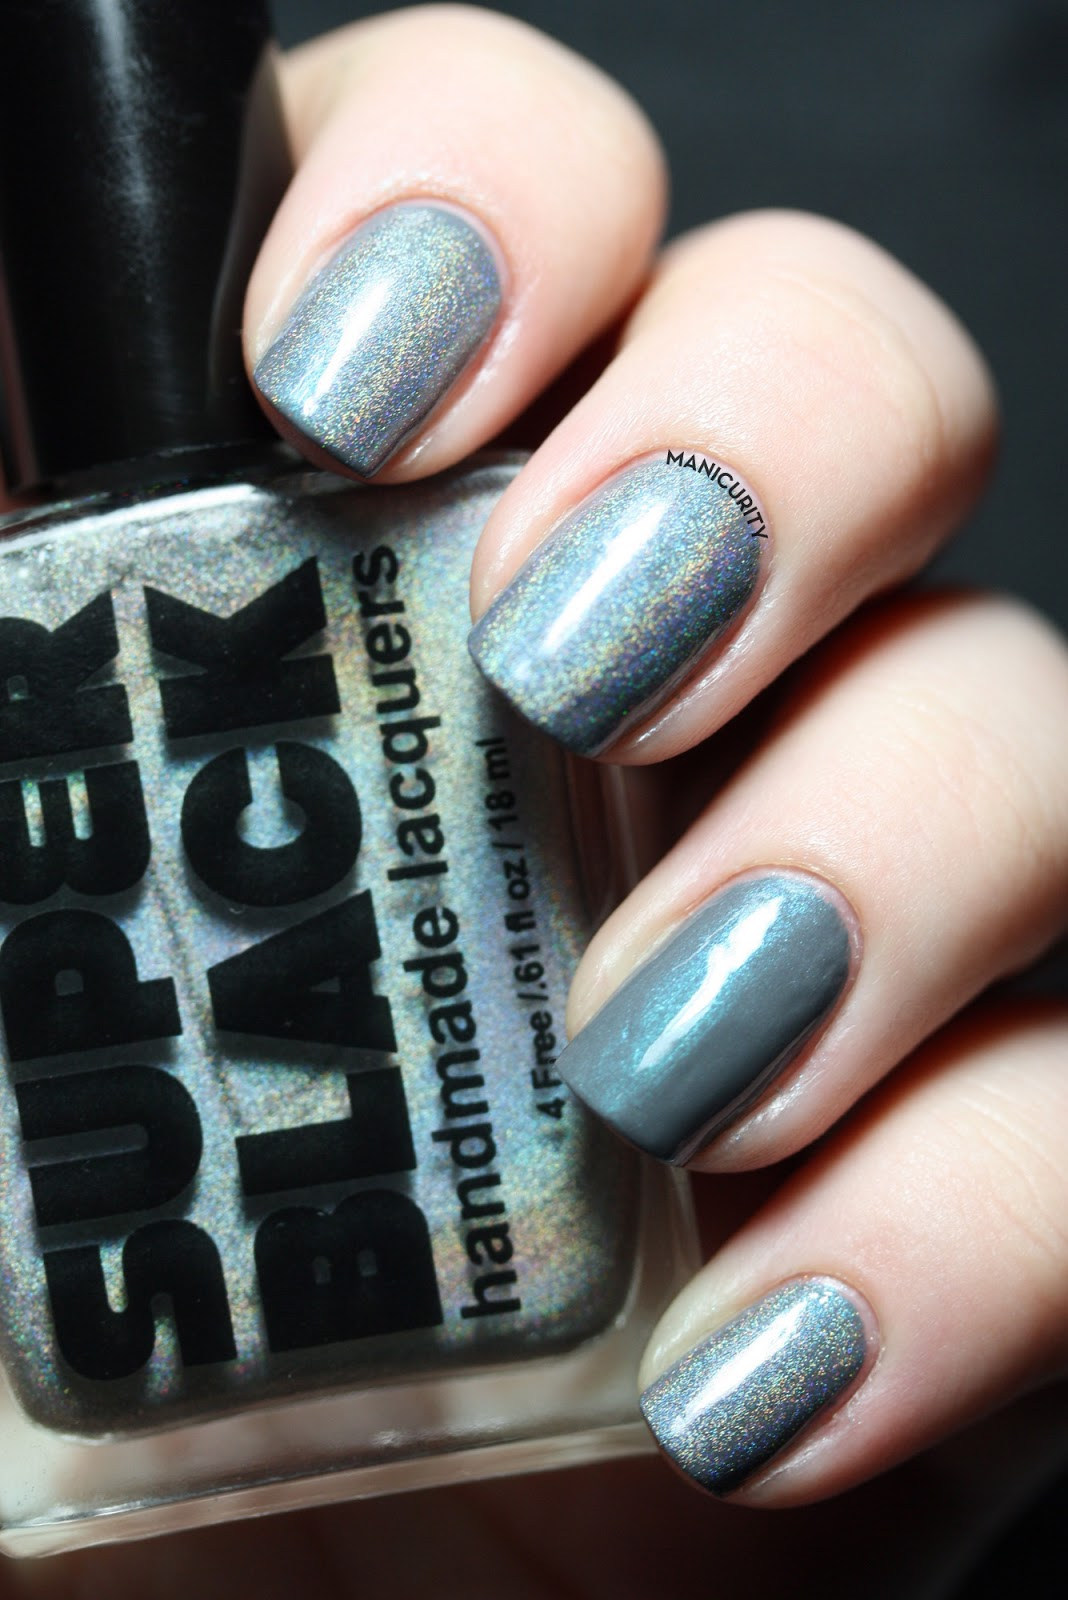 Manicurity: Super Black Lacquers Swatches & Review